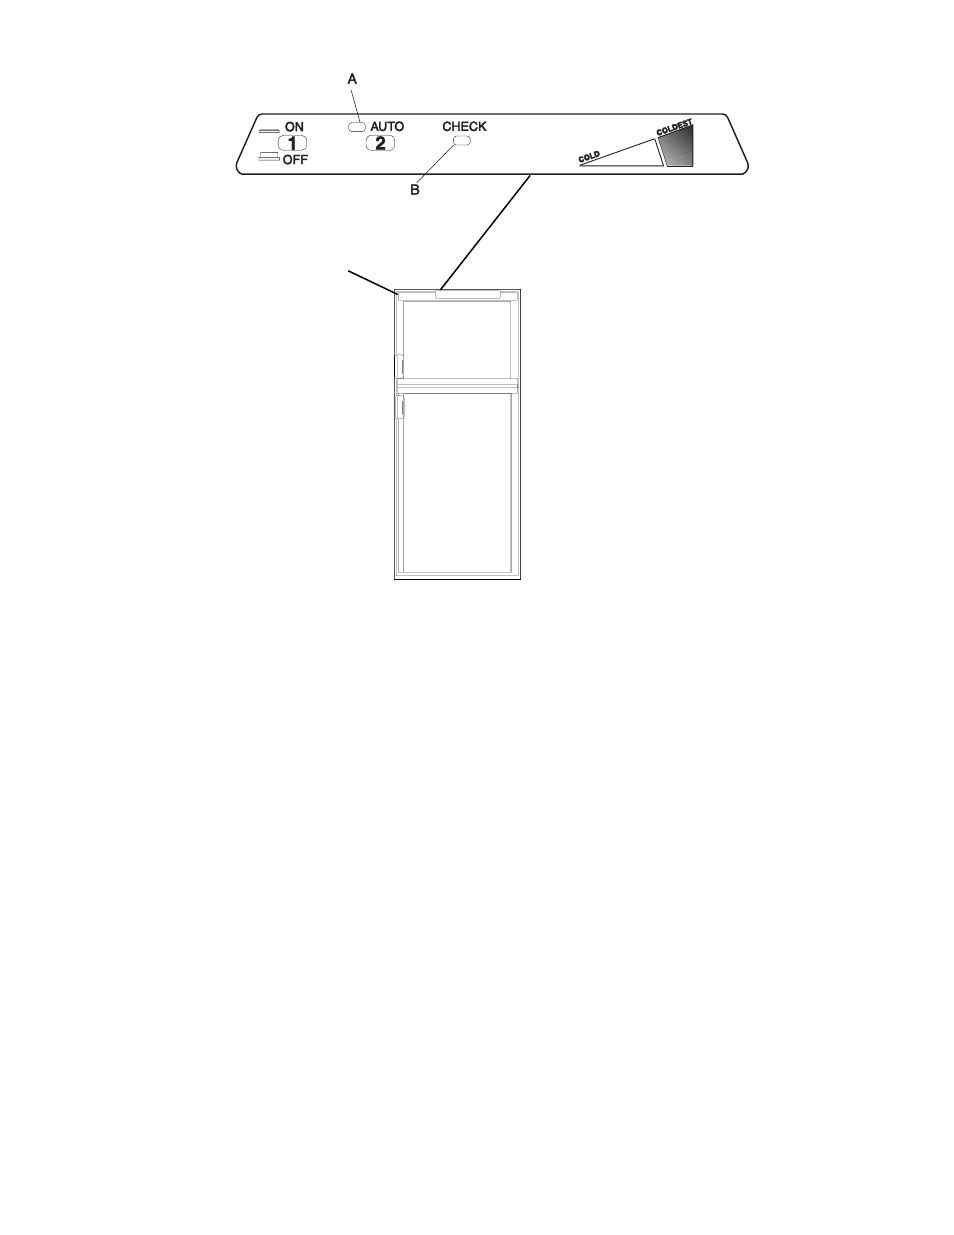 Control Panel Description Of Operating Modes Dometic Rm2652 User 2 Way Switch Operation Manual Page 9 14